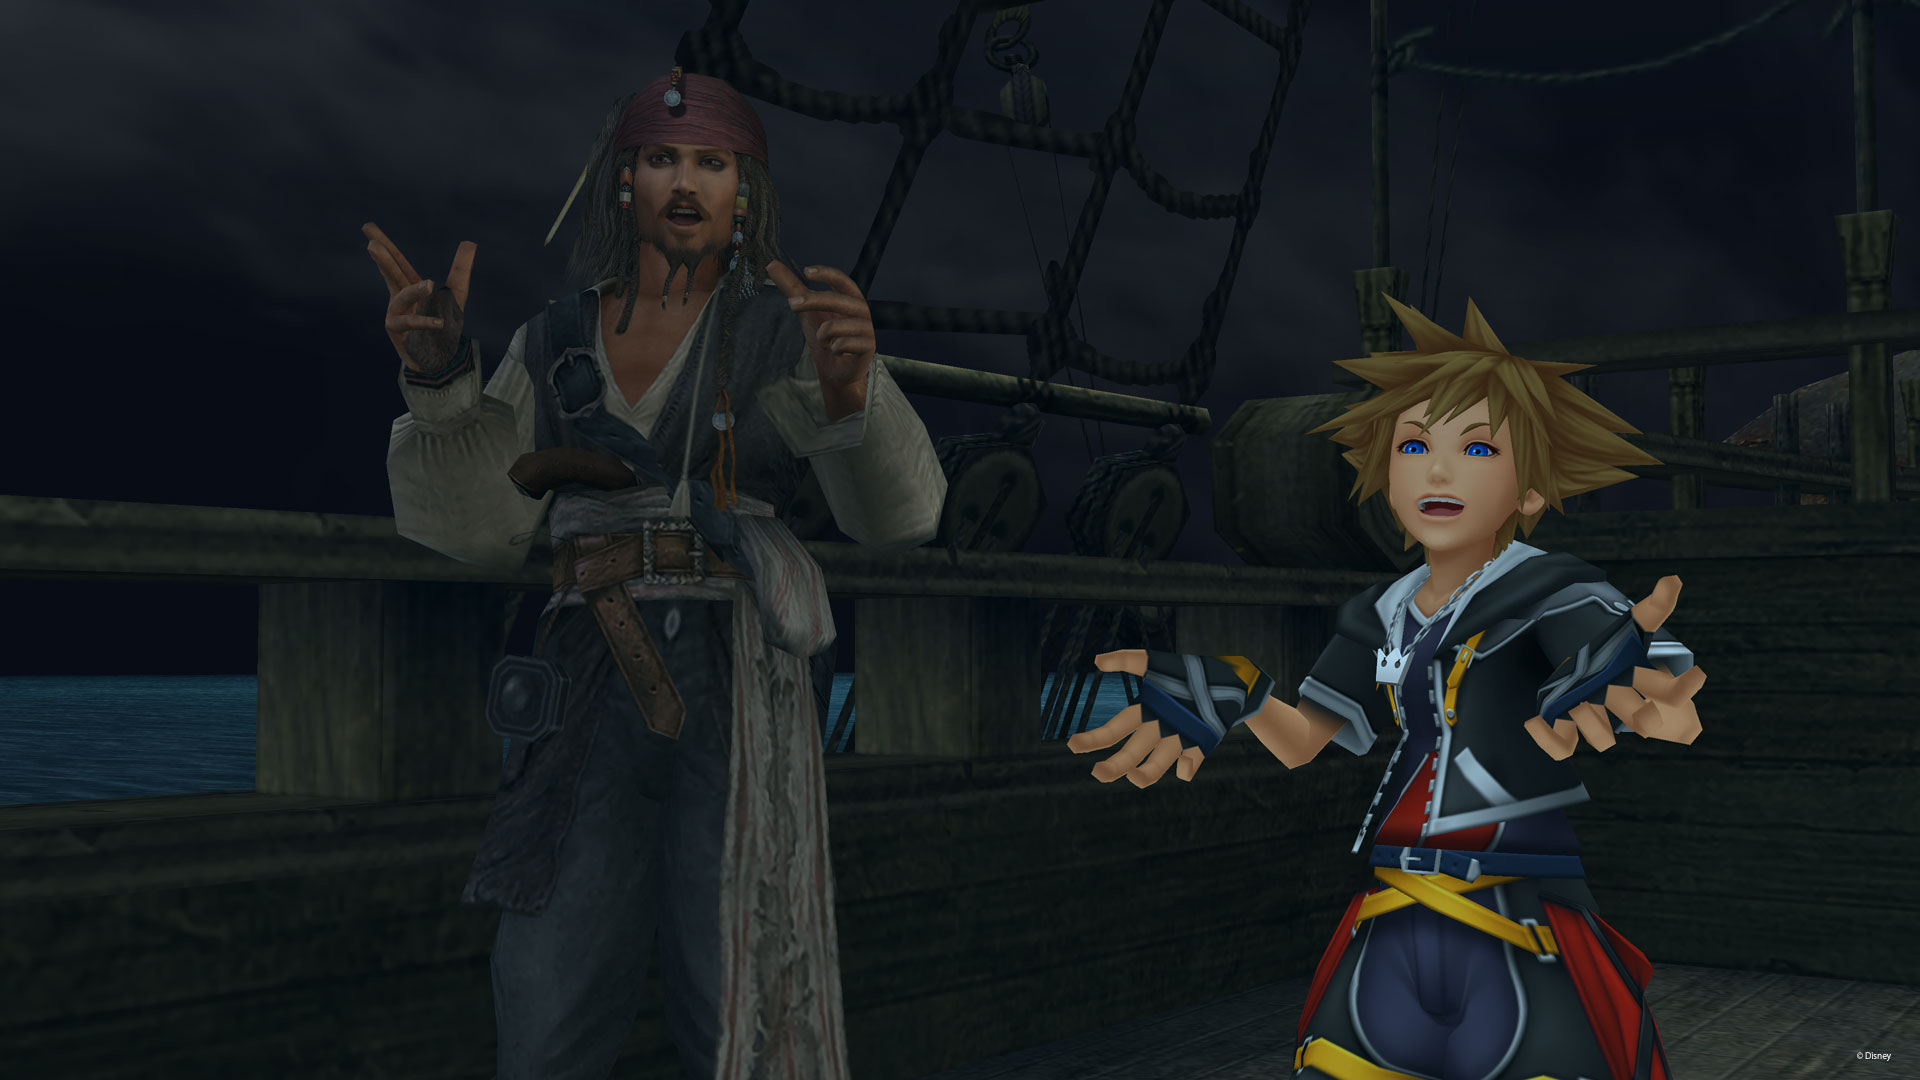 Image result for Kingdom hearts 2 final mix jack sparrow